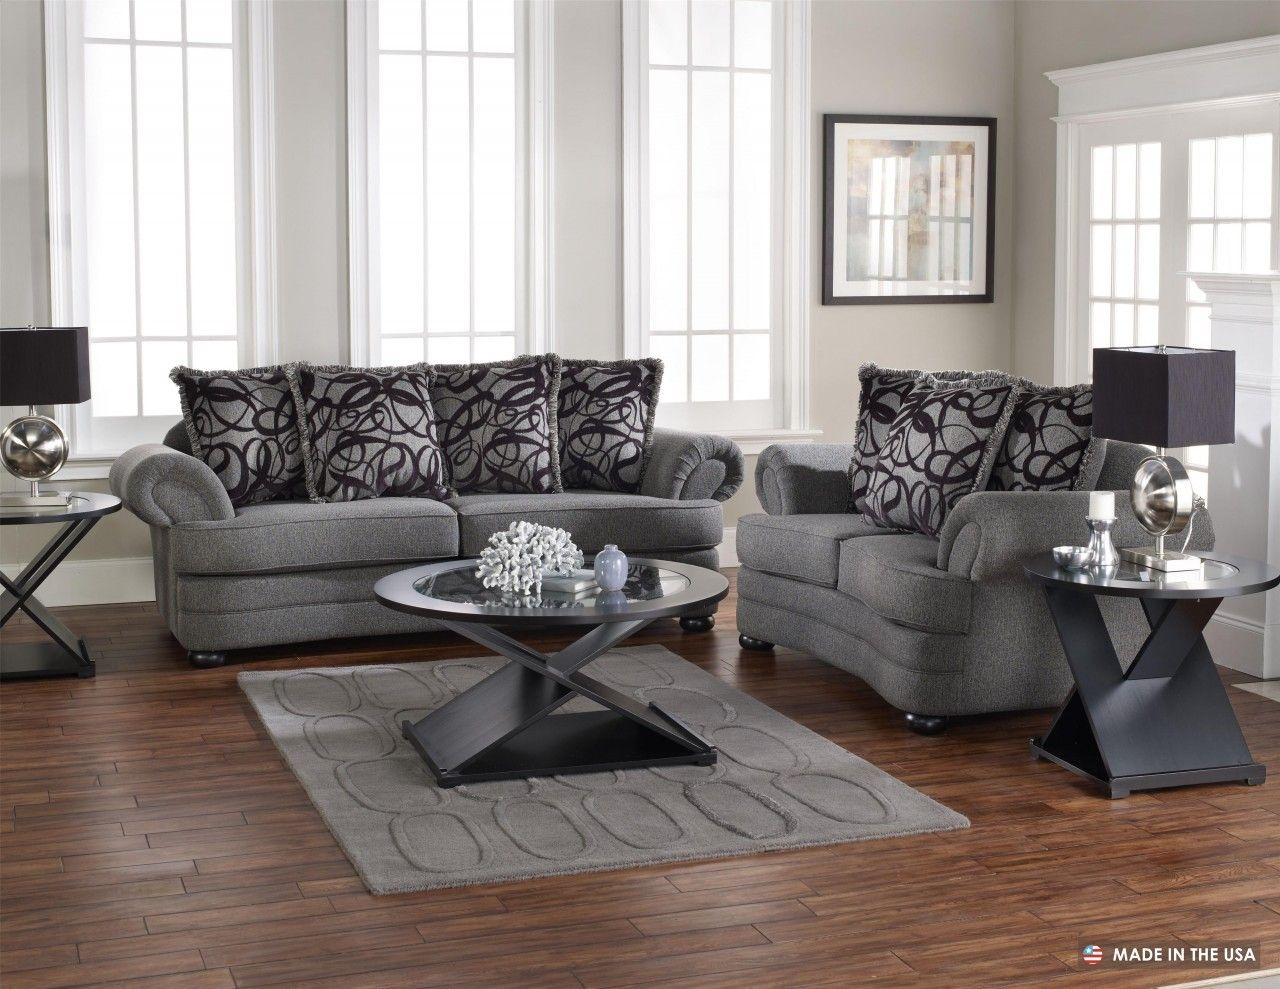 Wonderful Living Room Design With Grey Sofa Set And Cushion Patterned  Also Unique Round Coffee